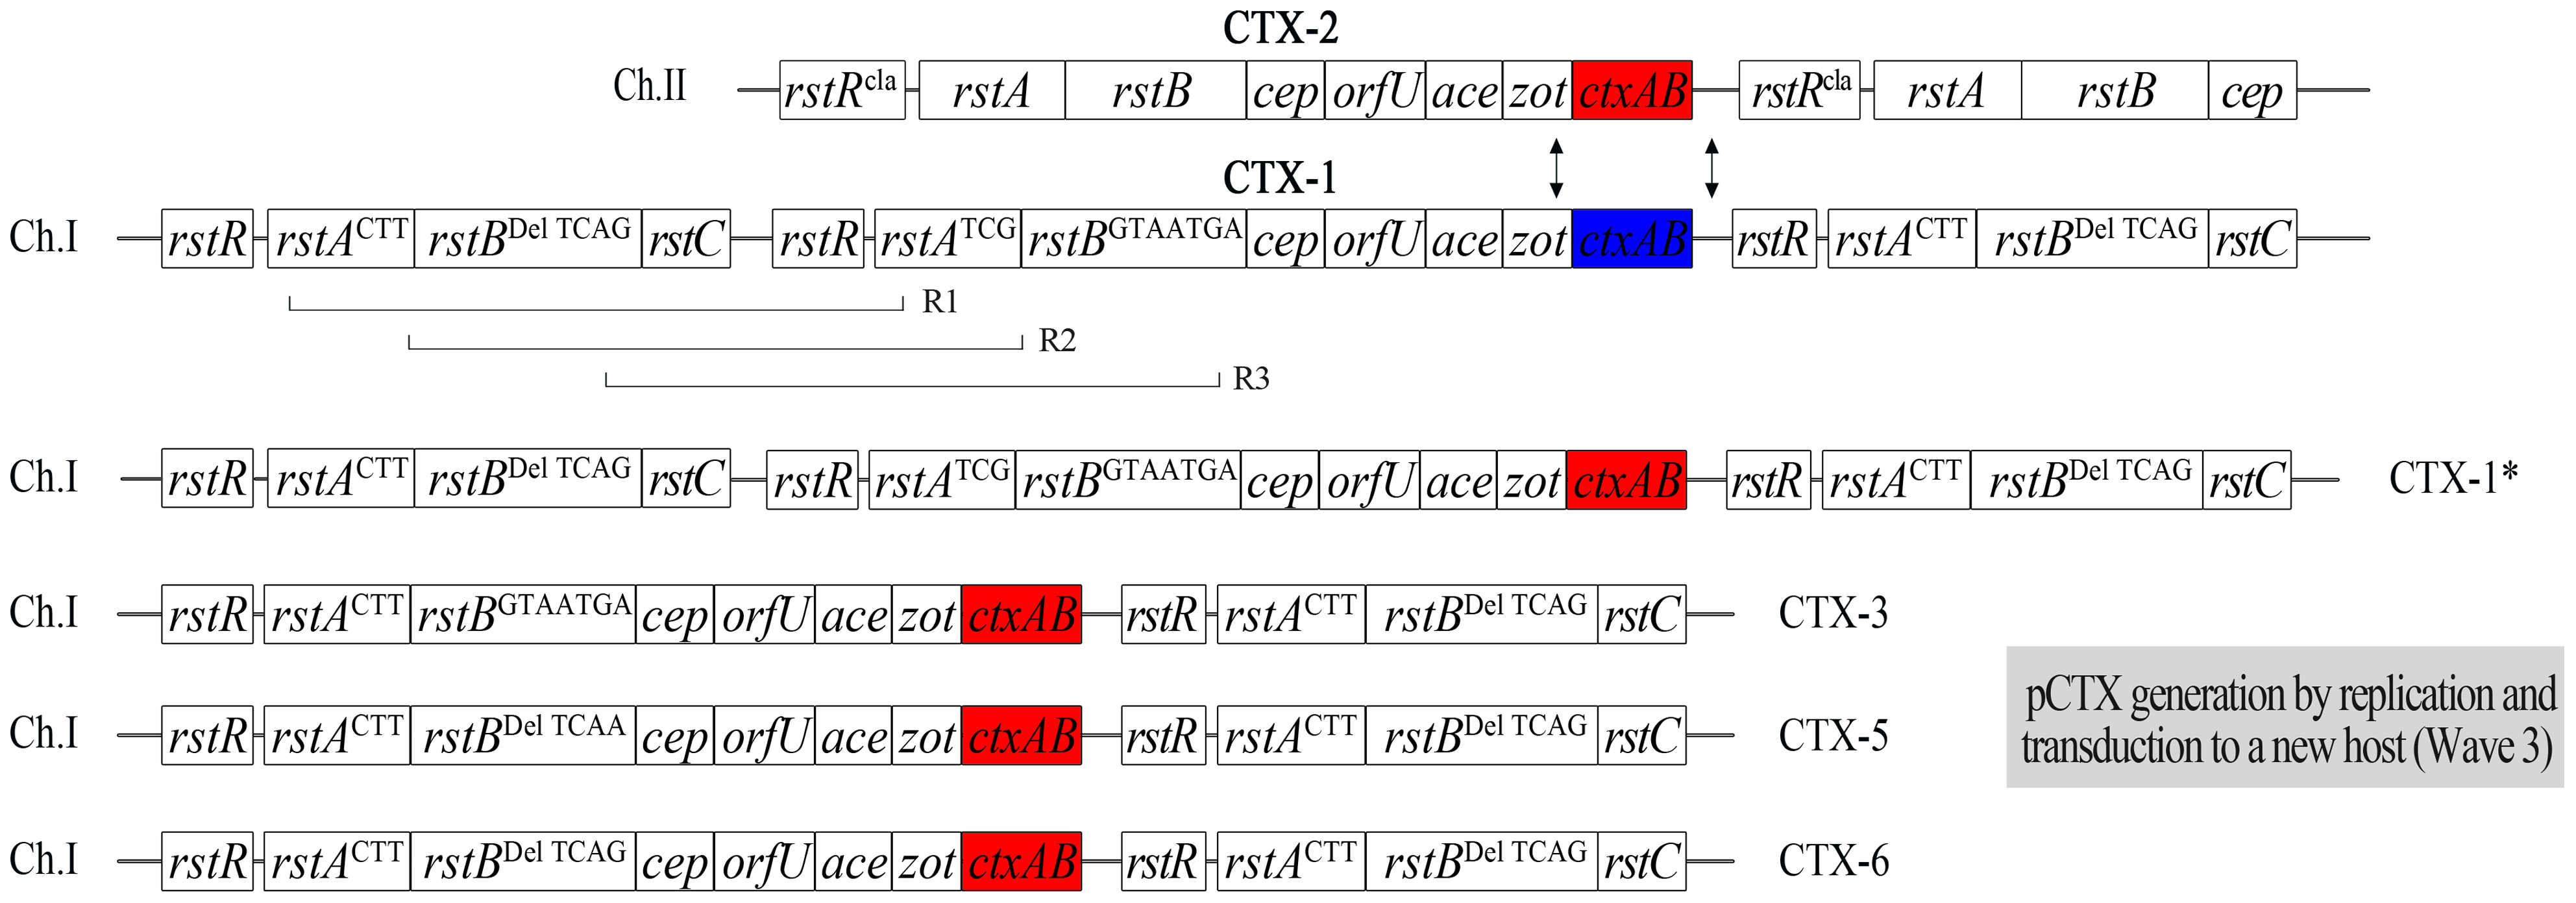 The generation of new mosaic CTX phages from V212-1 by inter-strand recombination between CTX phages and intra-strand recombination between CTX-1 and RS1 on chromosome 1.